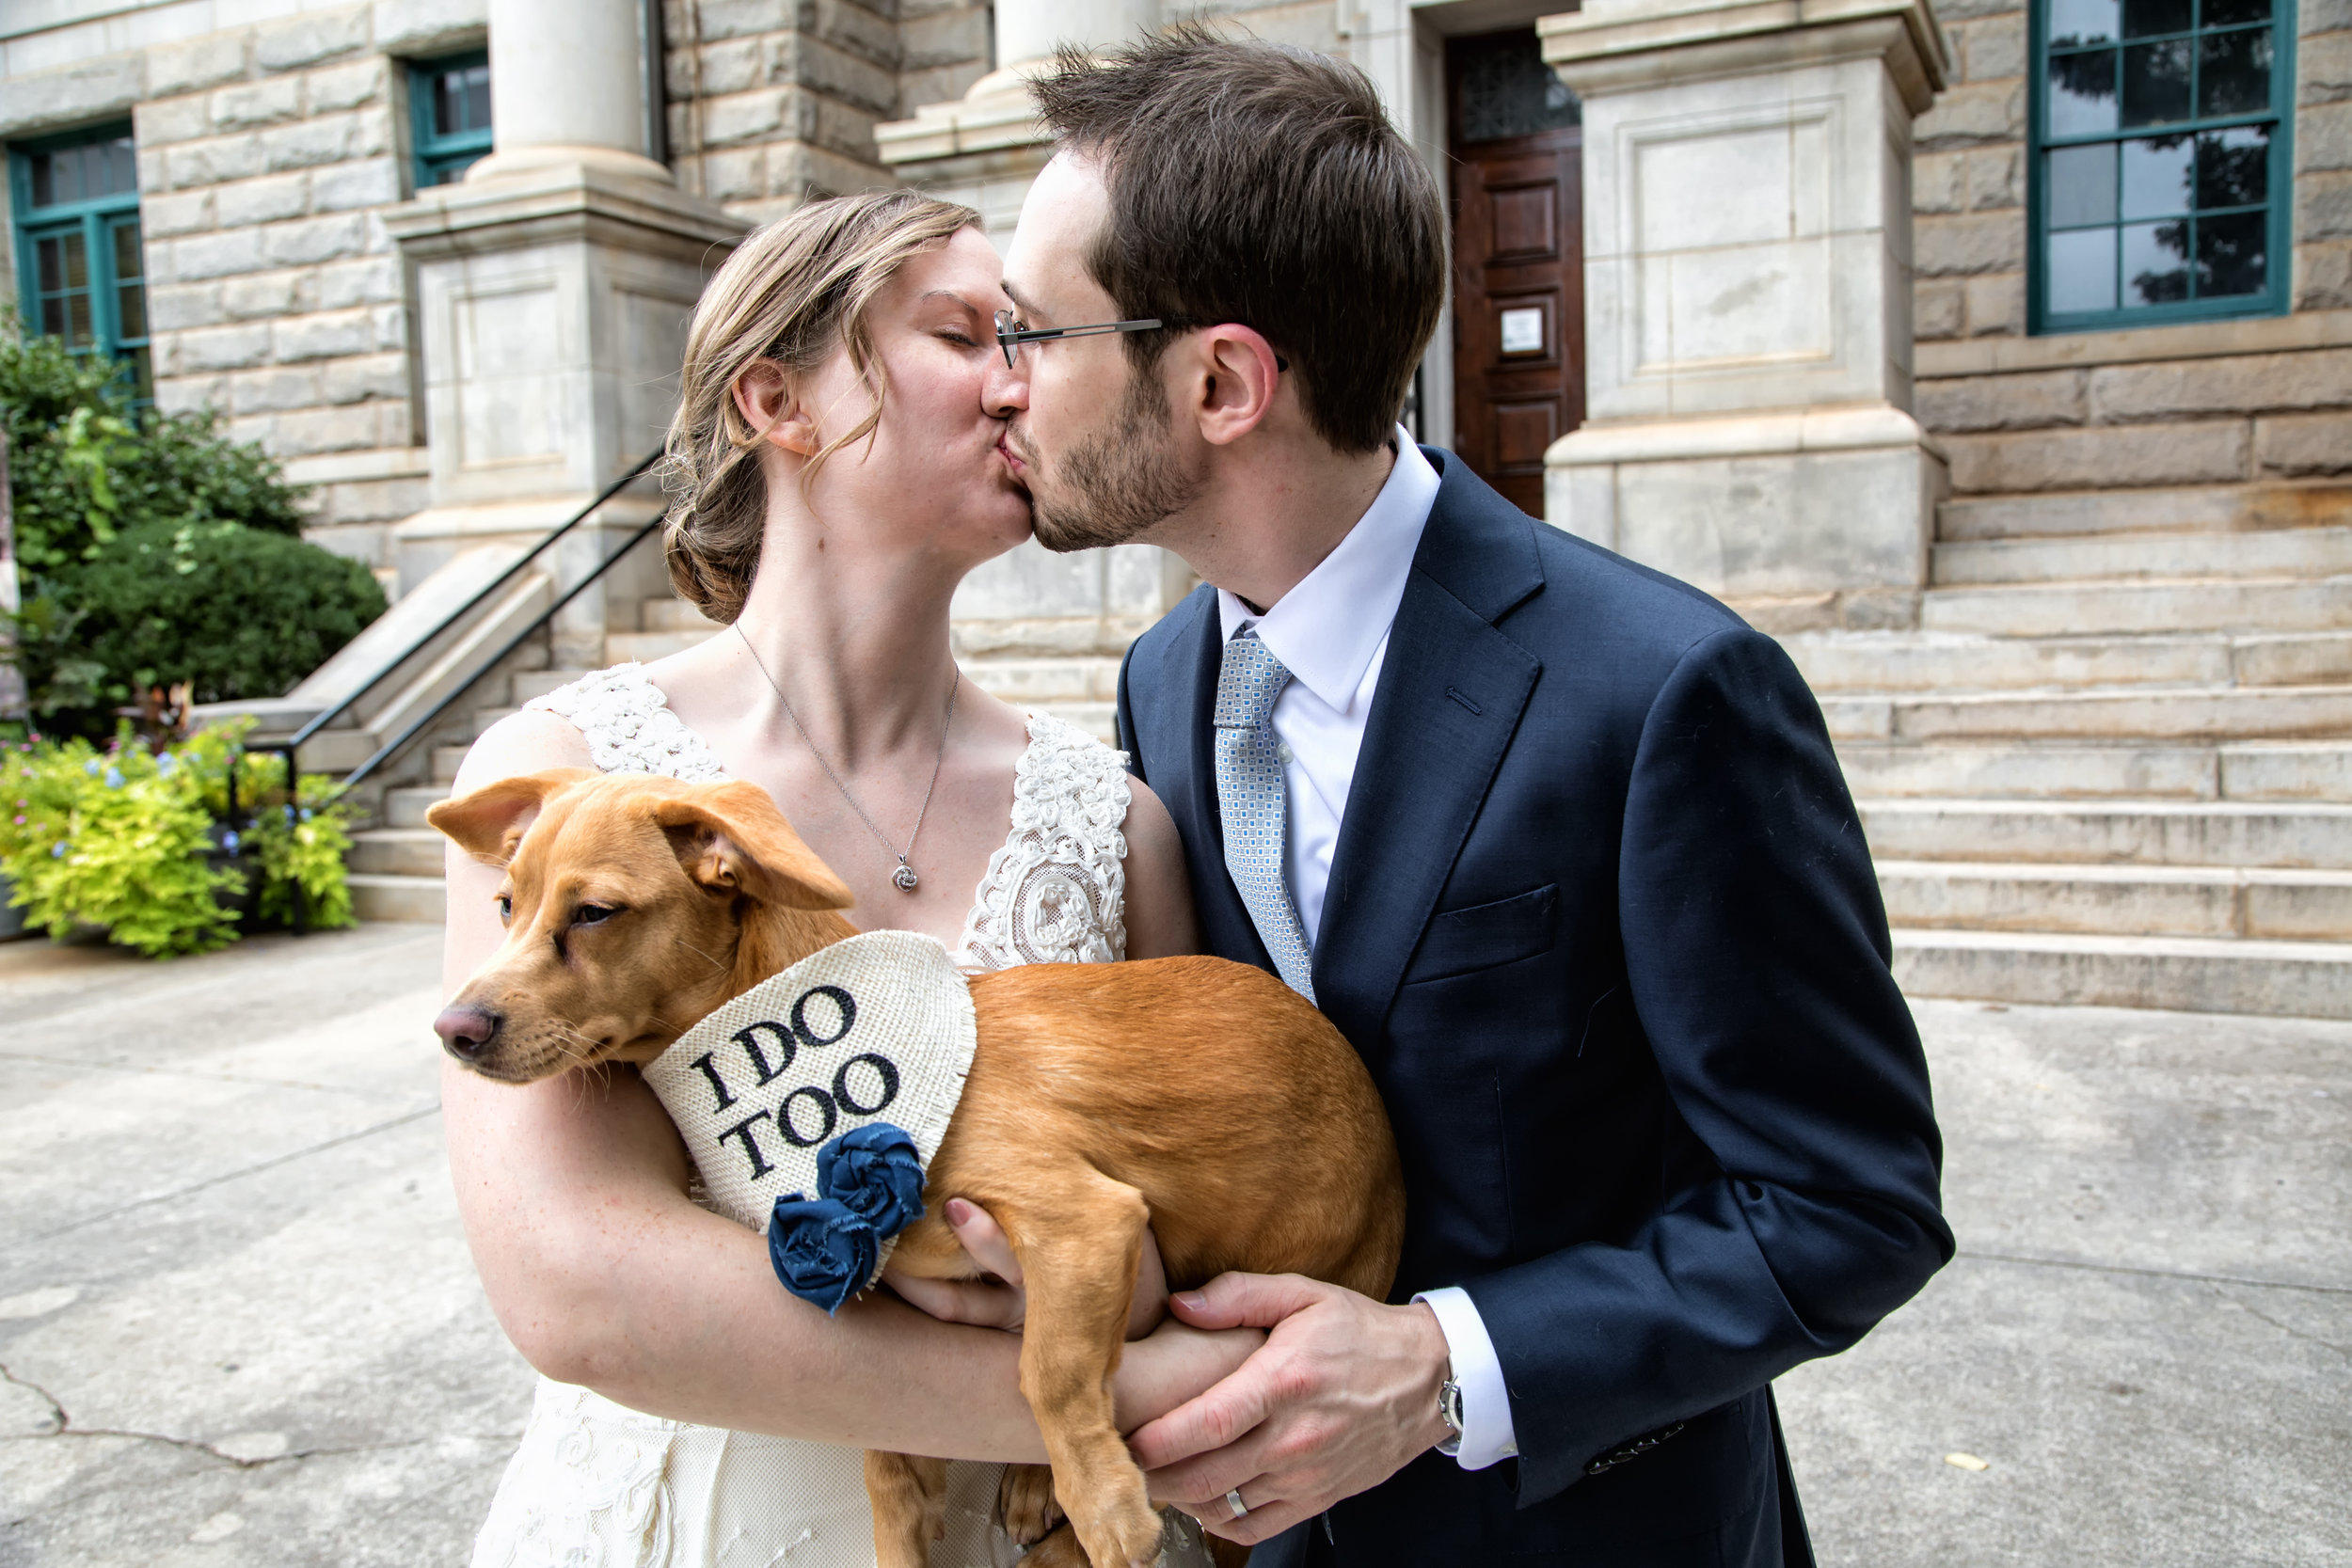 Elizabeth and Mark wedding ceremony was held at the DeKalb County Courthouse with their beloved dog, Rey, as the ring bearer.